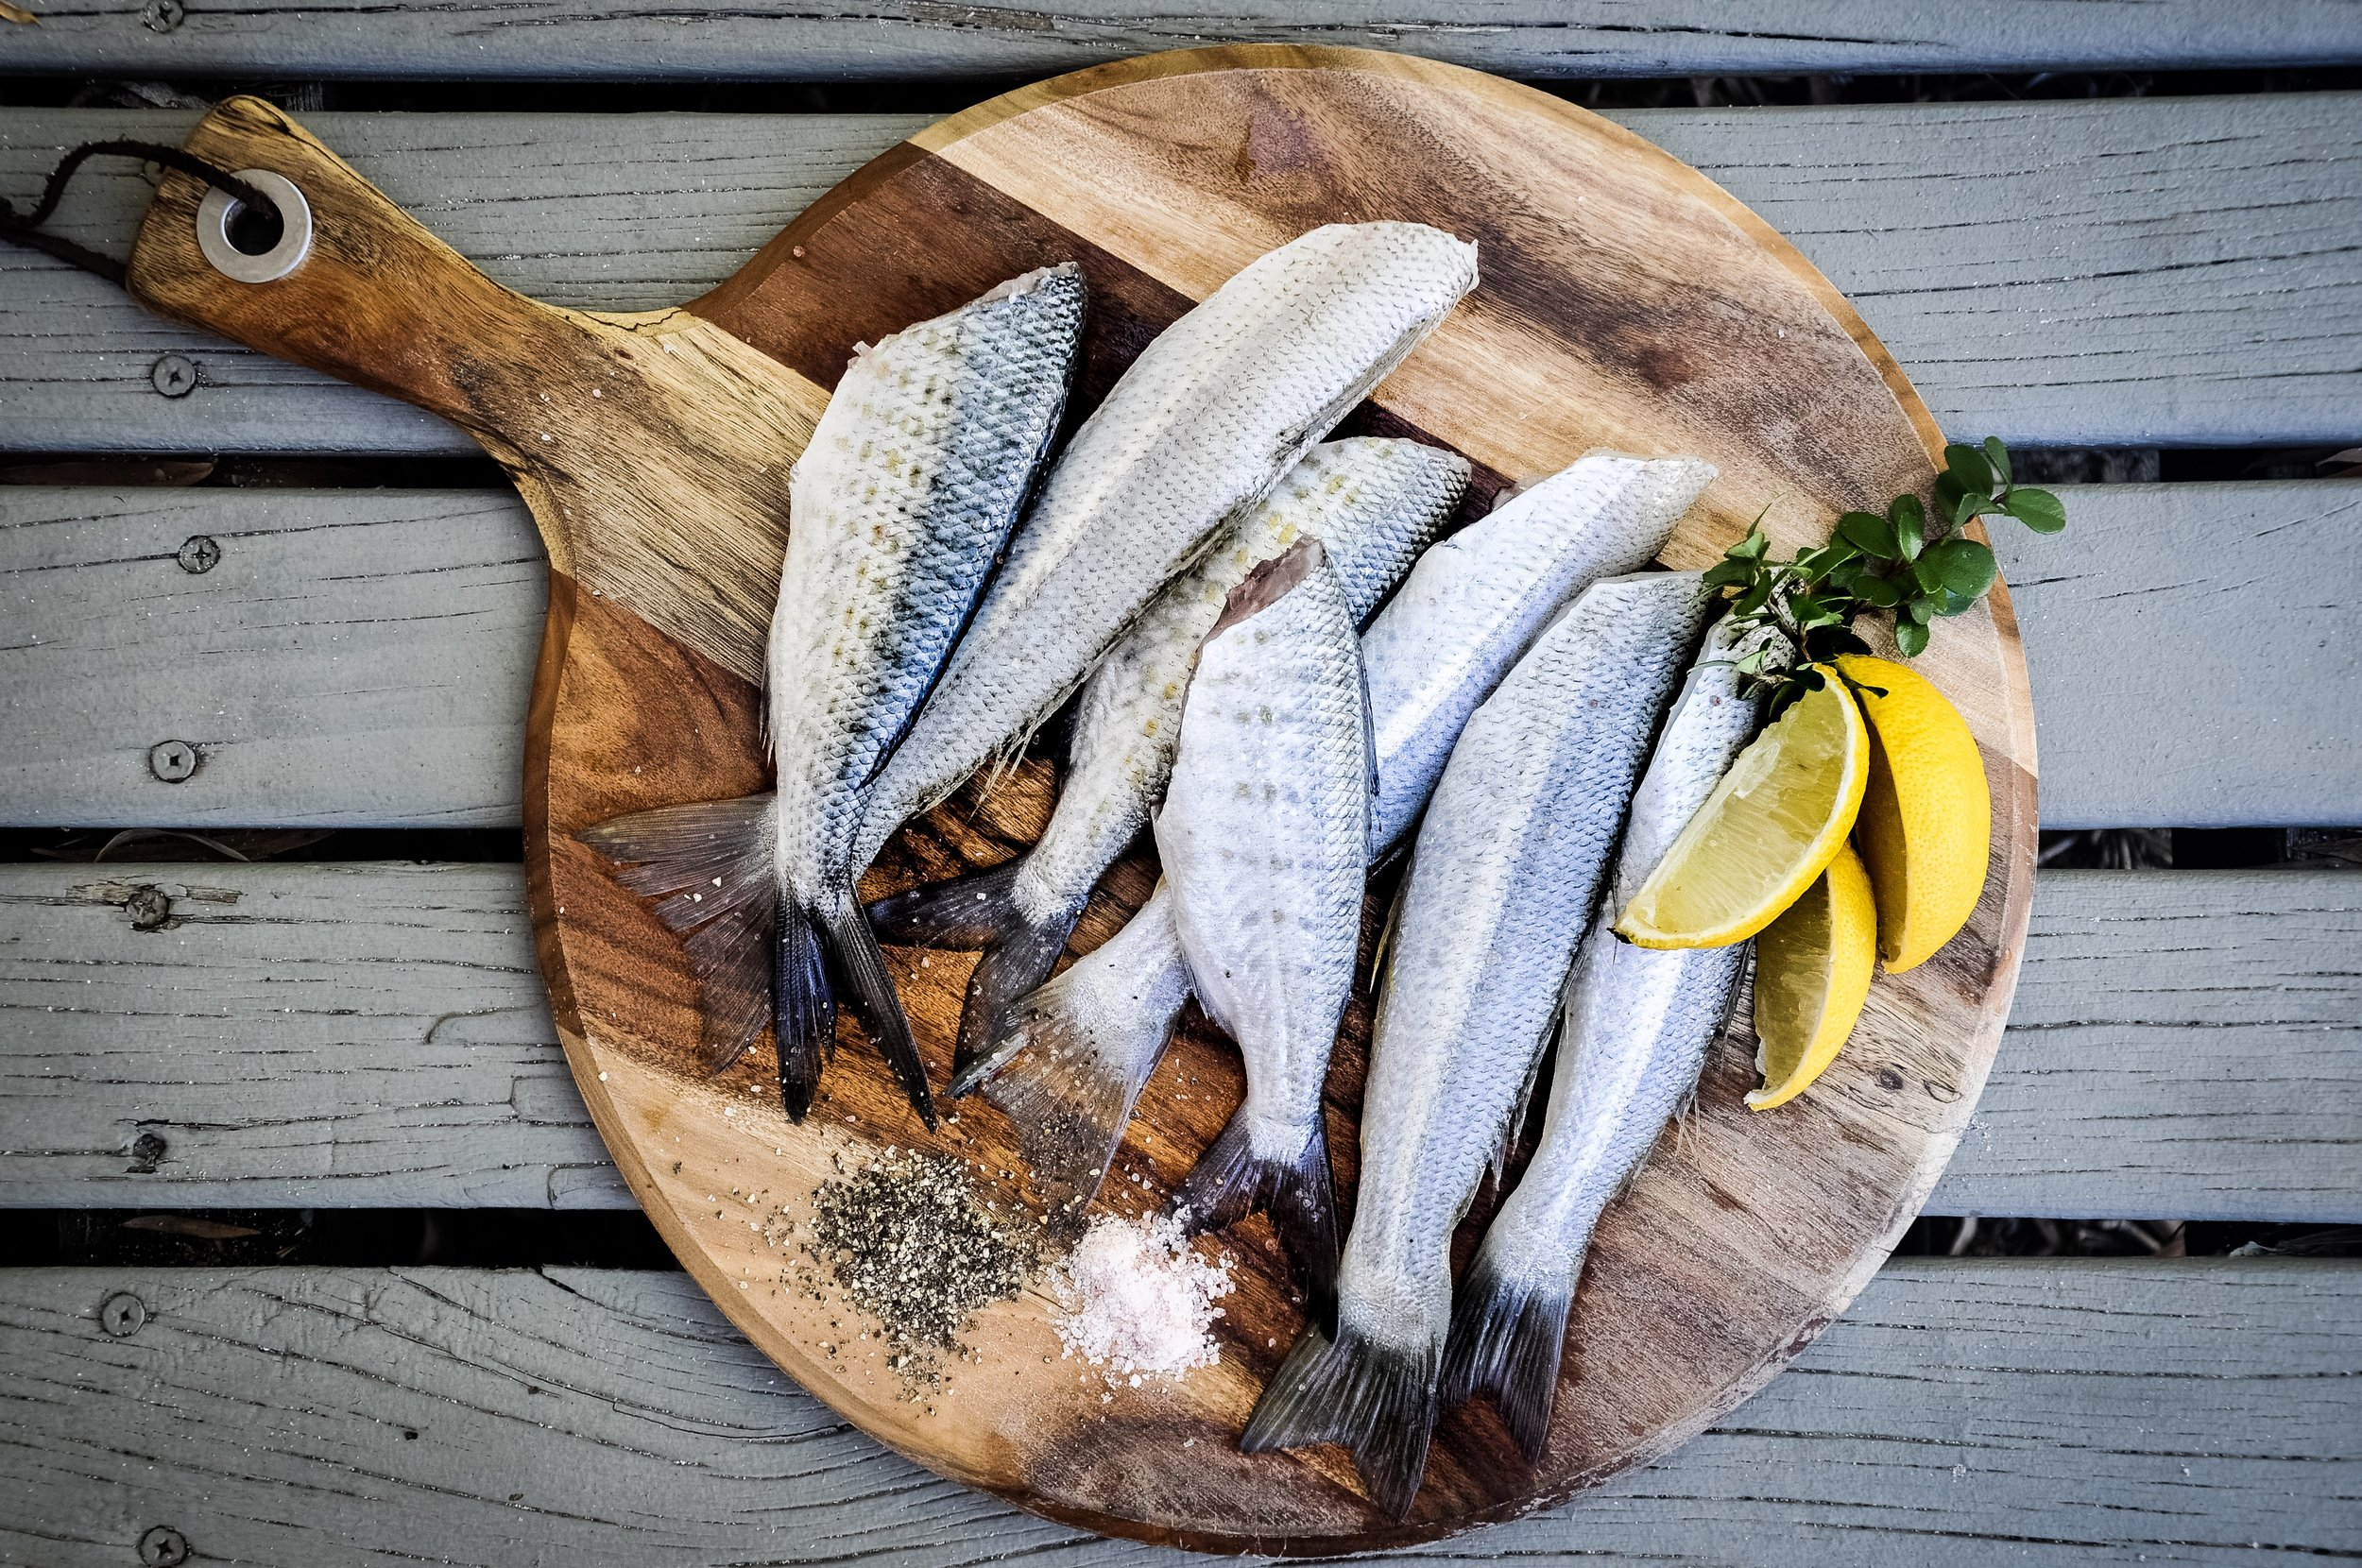 Fish are a great source of Omega 3's